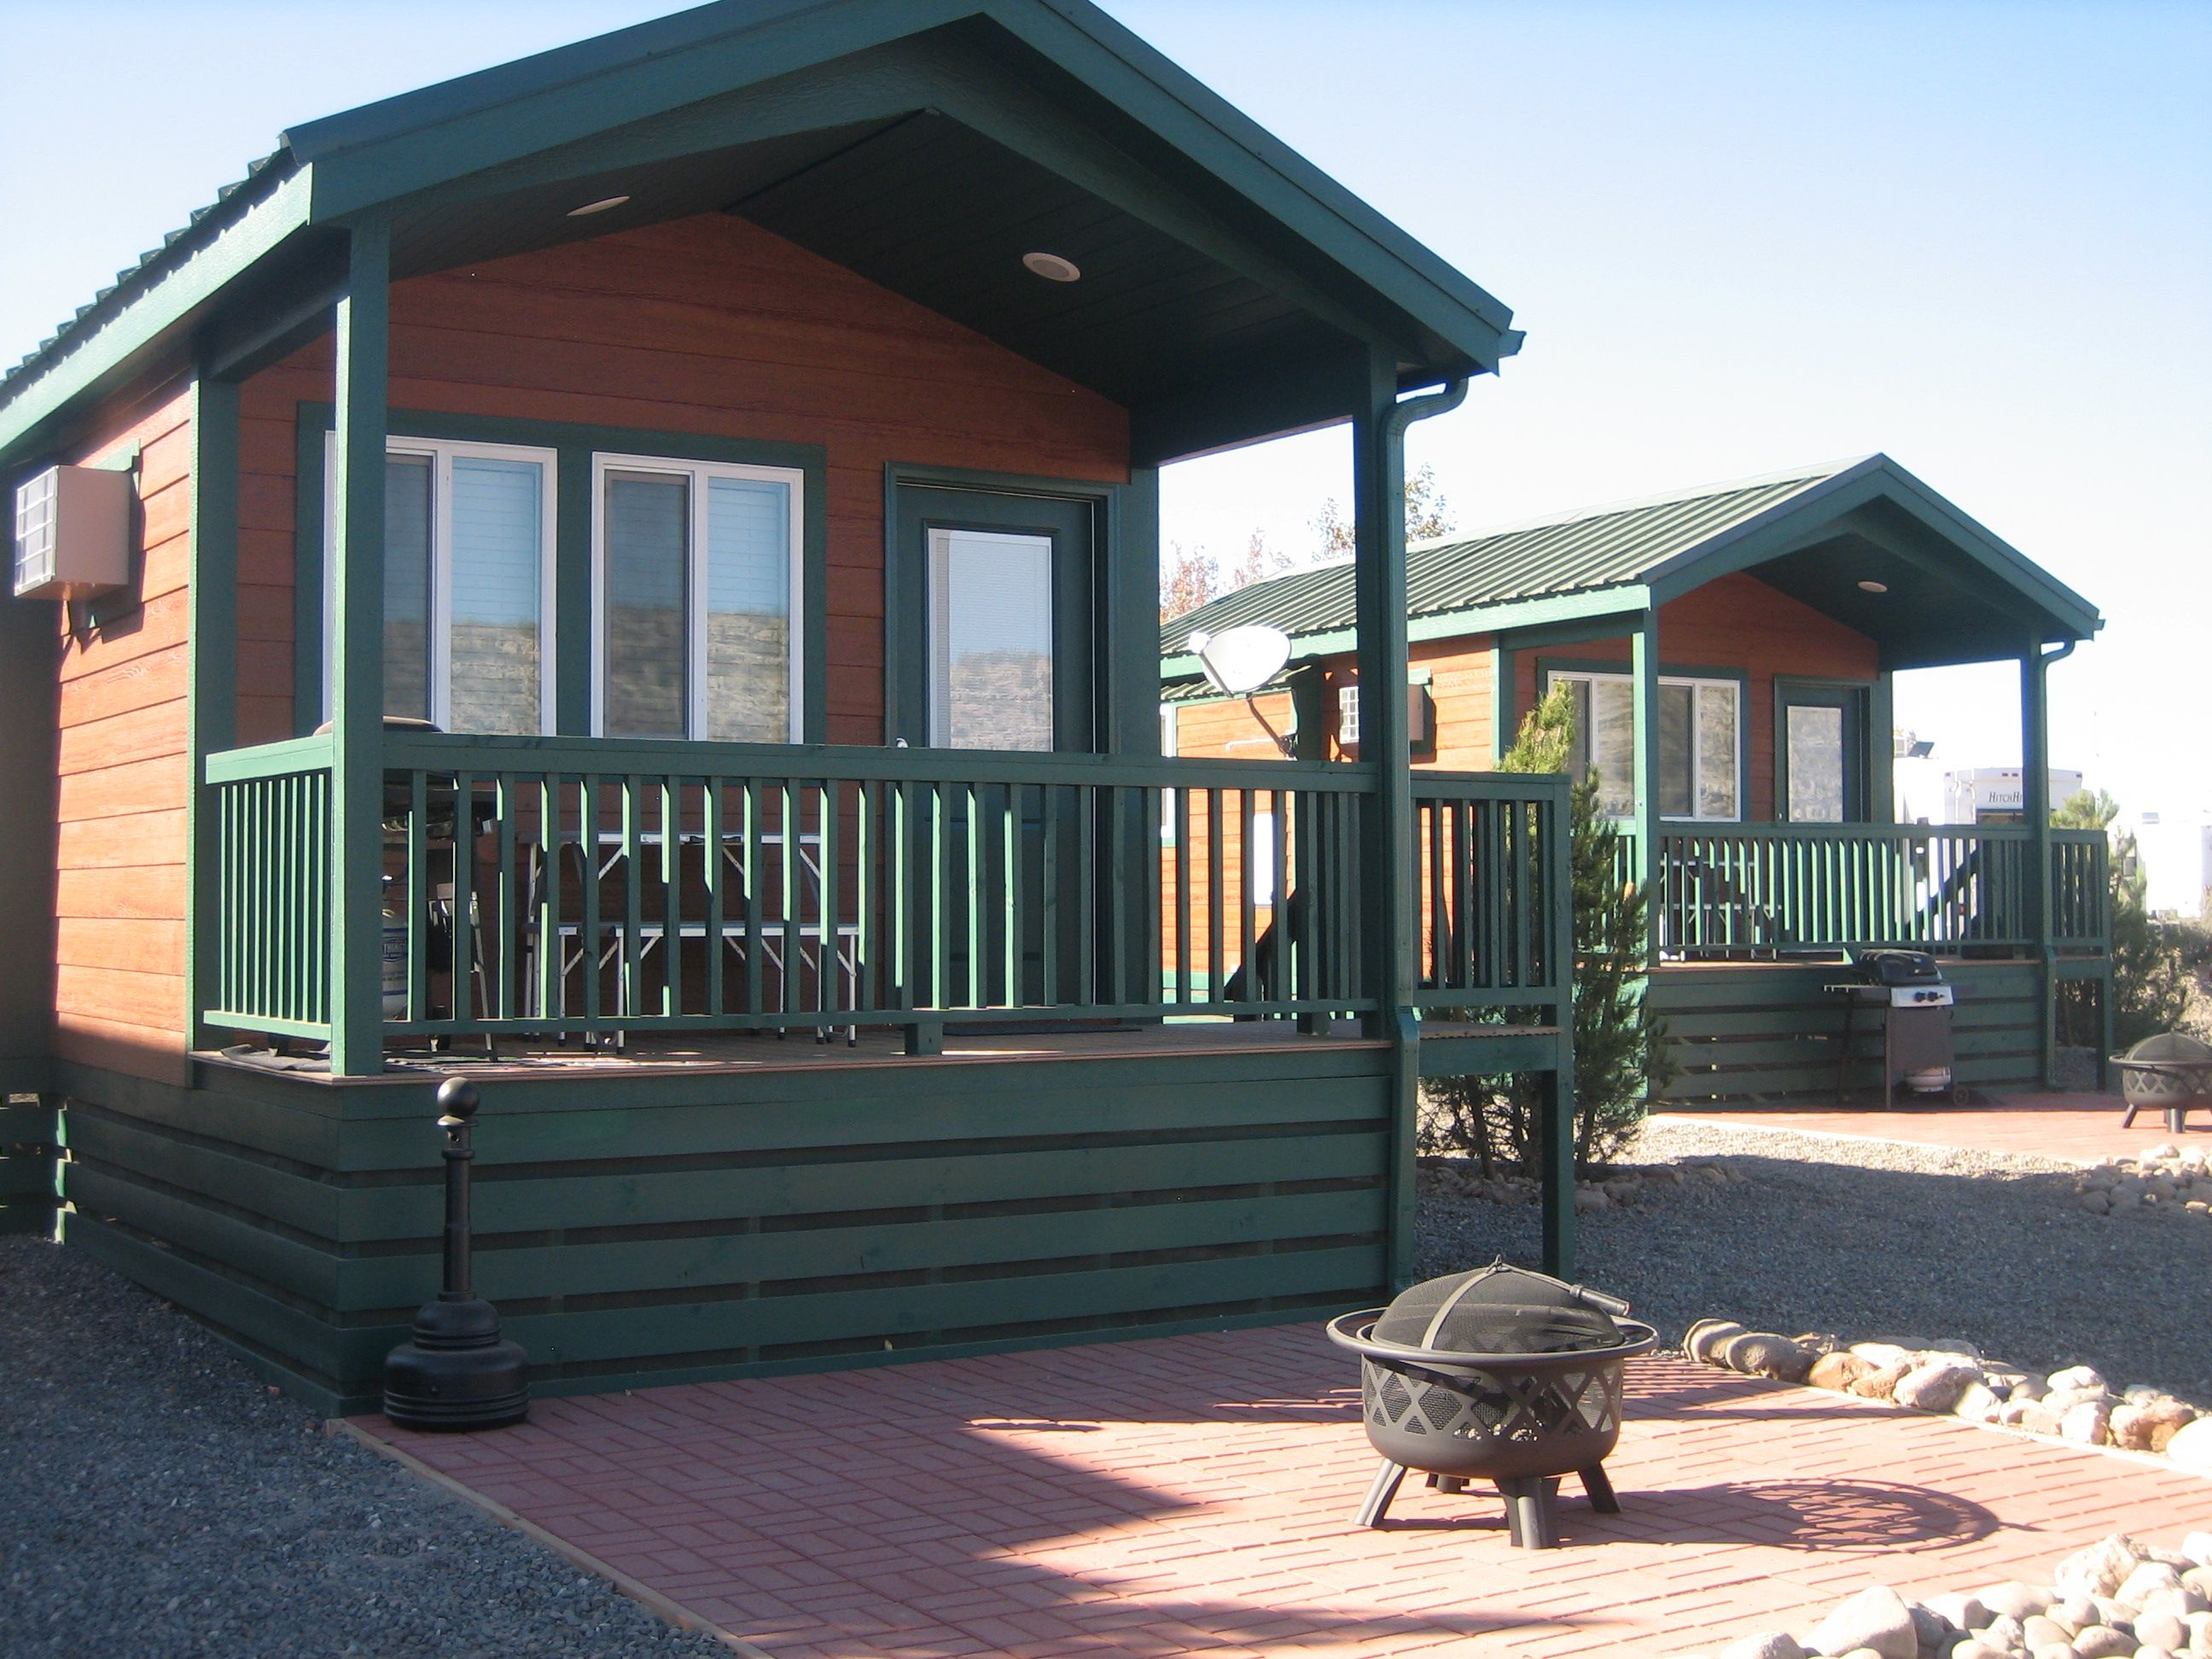 sale sample img the listing cabin item rentals az stay woods at in product an actual cabins one a payson for not week